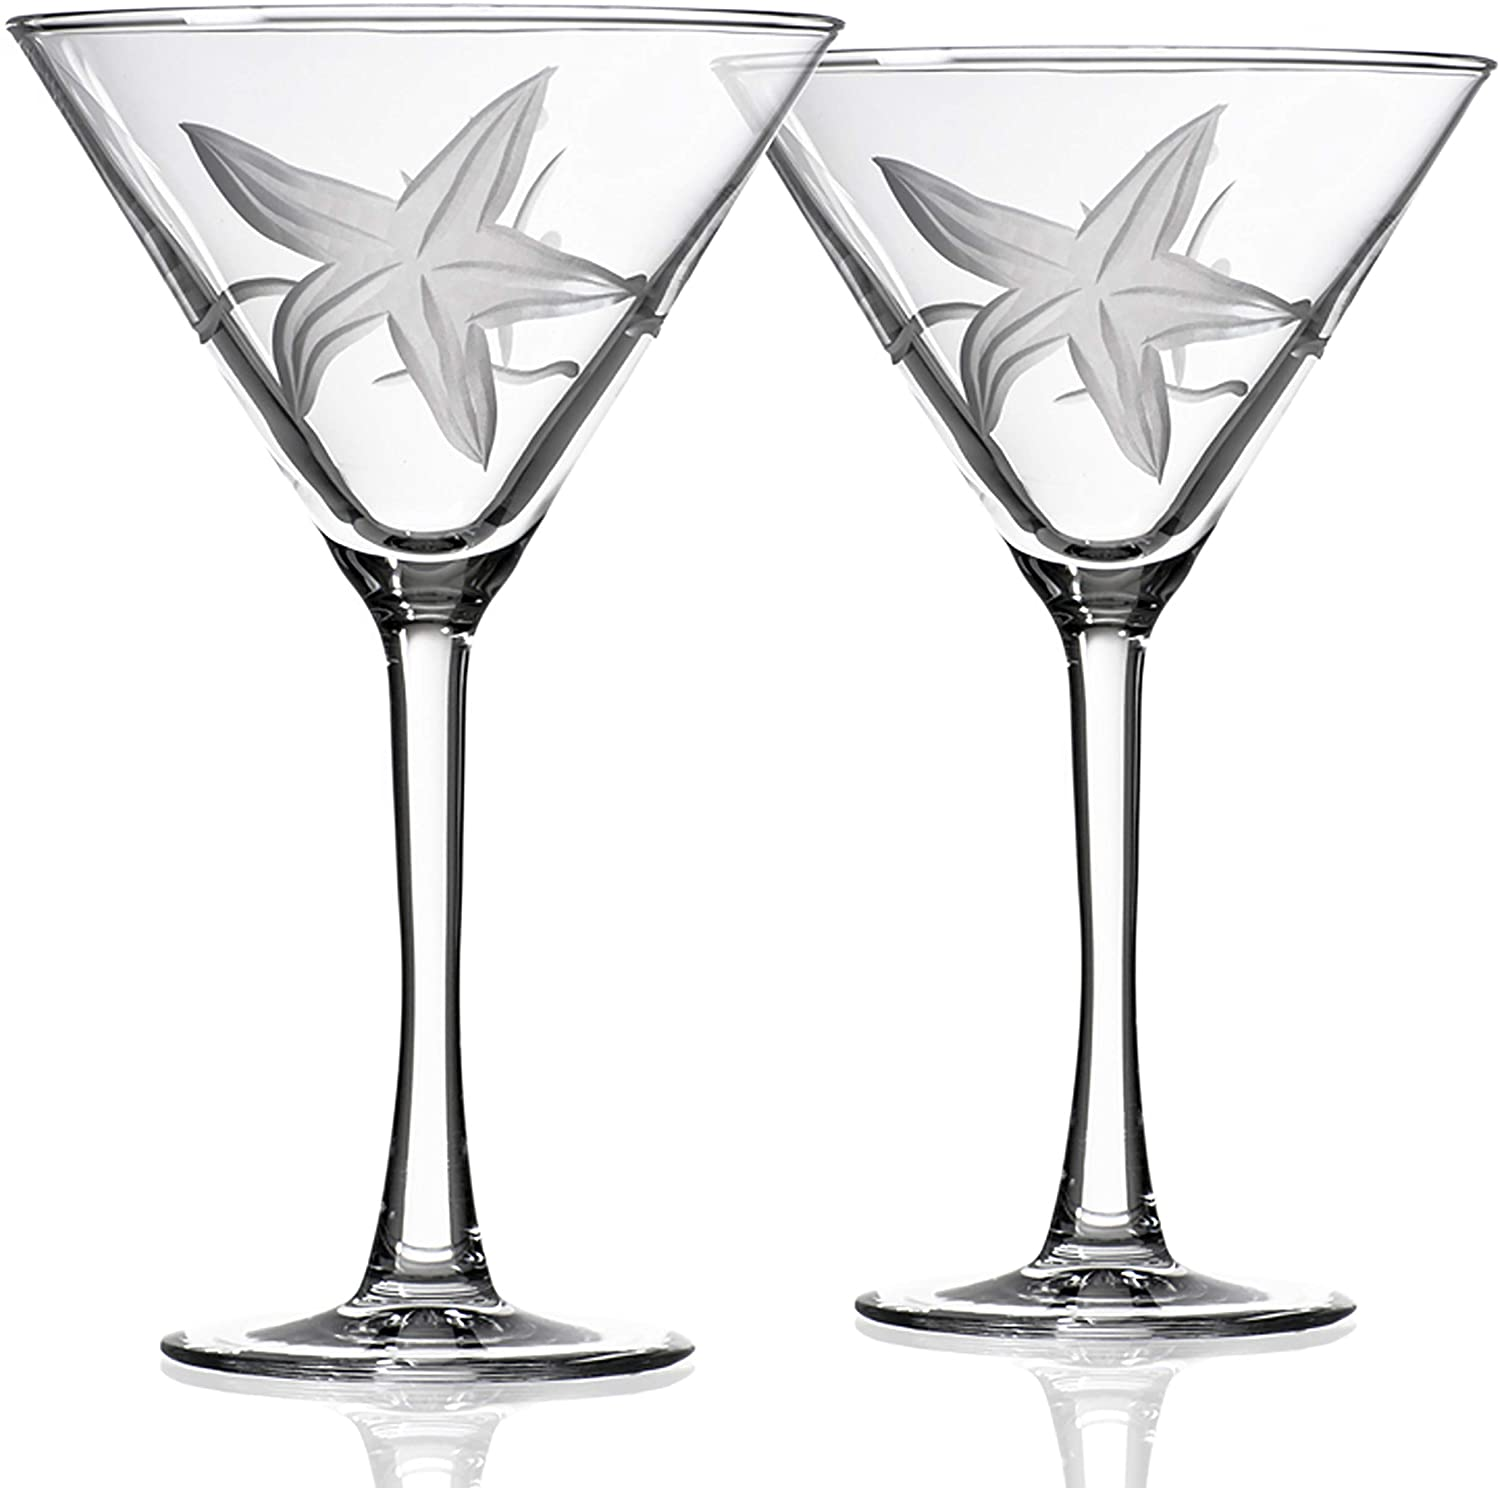 Rolf Glass Starfish Martini Glass 10 Ounce - Set of 2 Stemmed 10 ounce Martini Glasses - Lead-Free Crystal Glass - Diamond-Wheel Etched Cocktail Glasses - Made in the USA